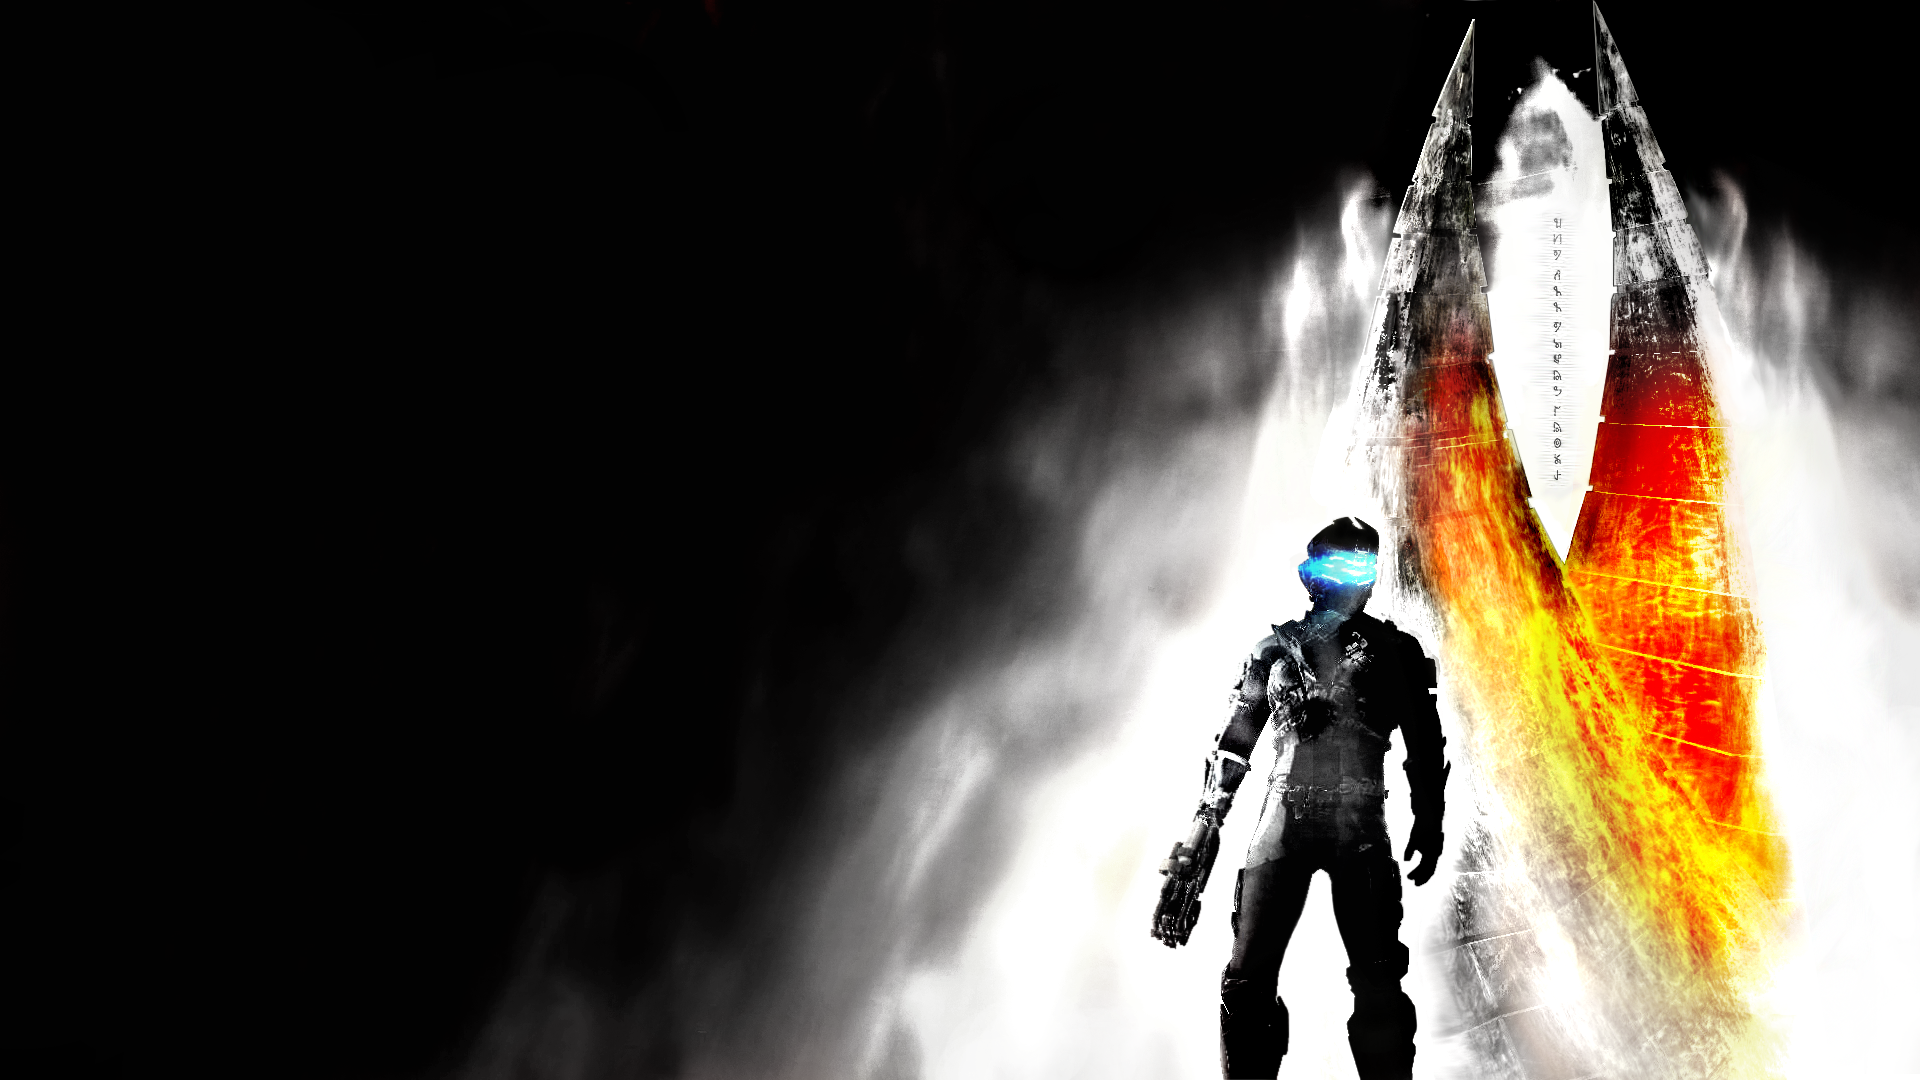 Dead Space Wallpaper - Dead Space , HD Wallpaper & Backgrounds